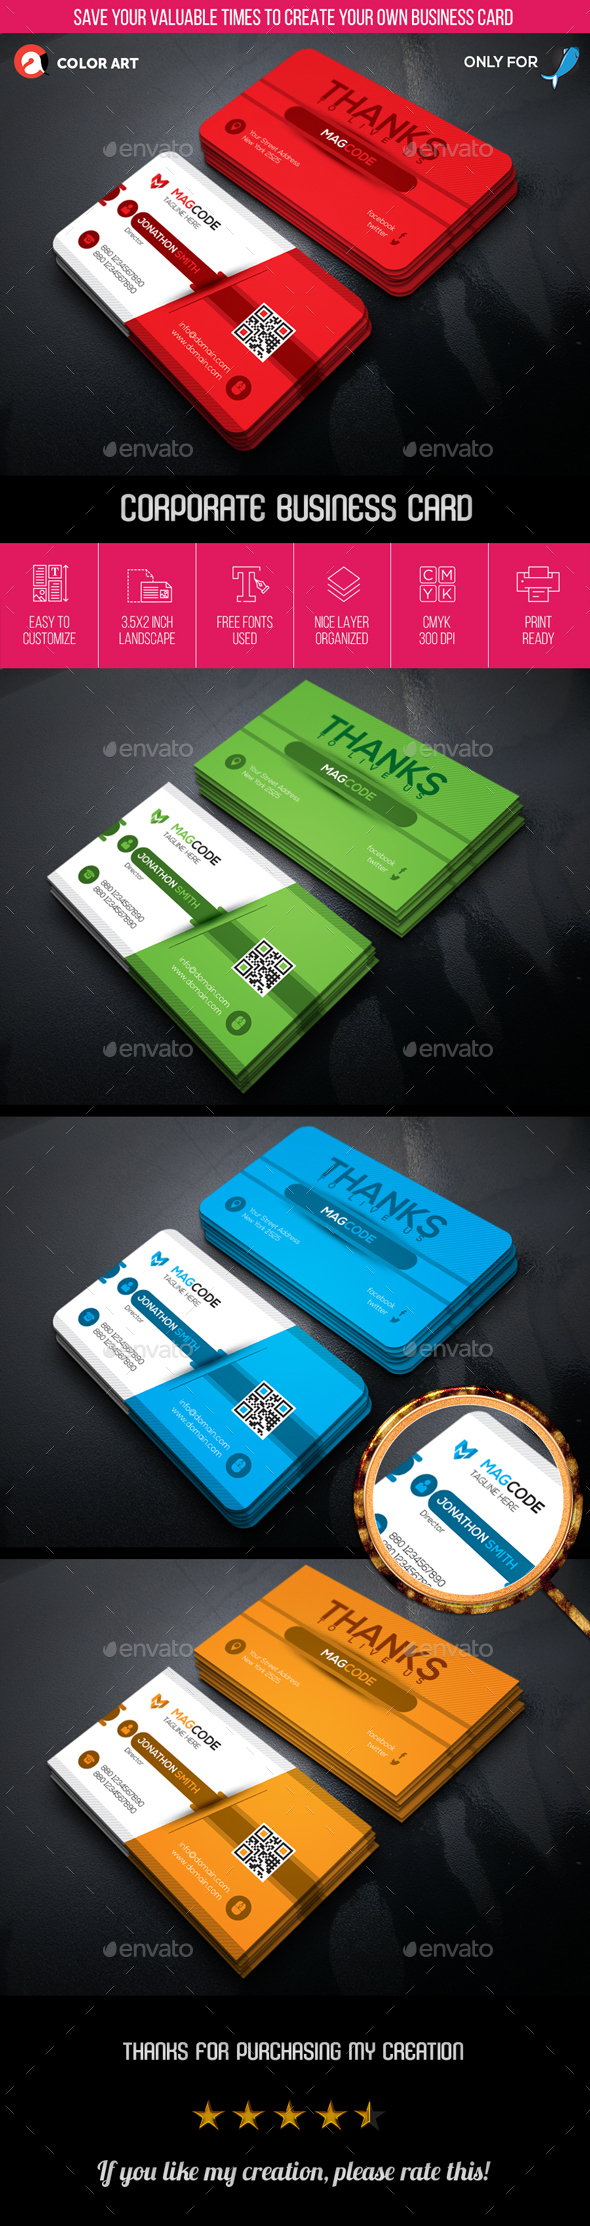 Corporate Business Card V.1 - Business Cards Print Templates